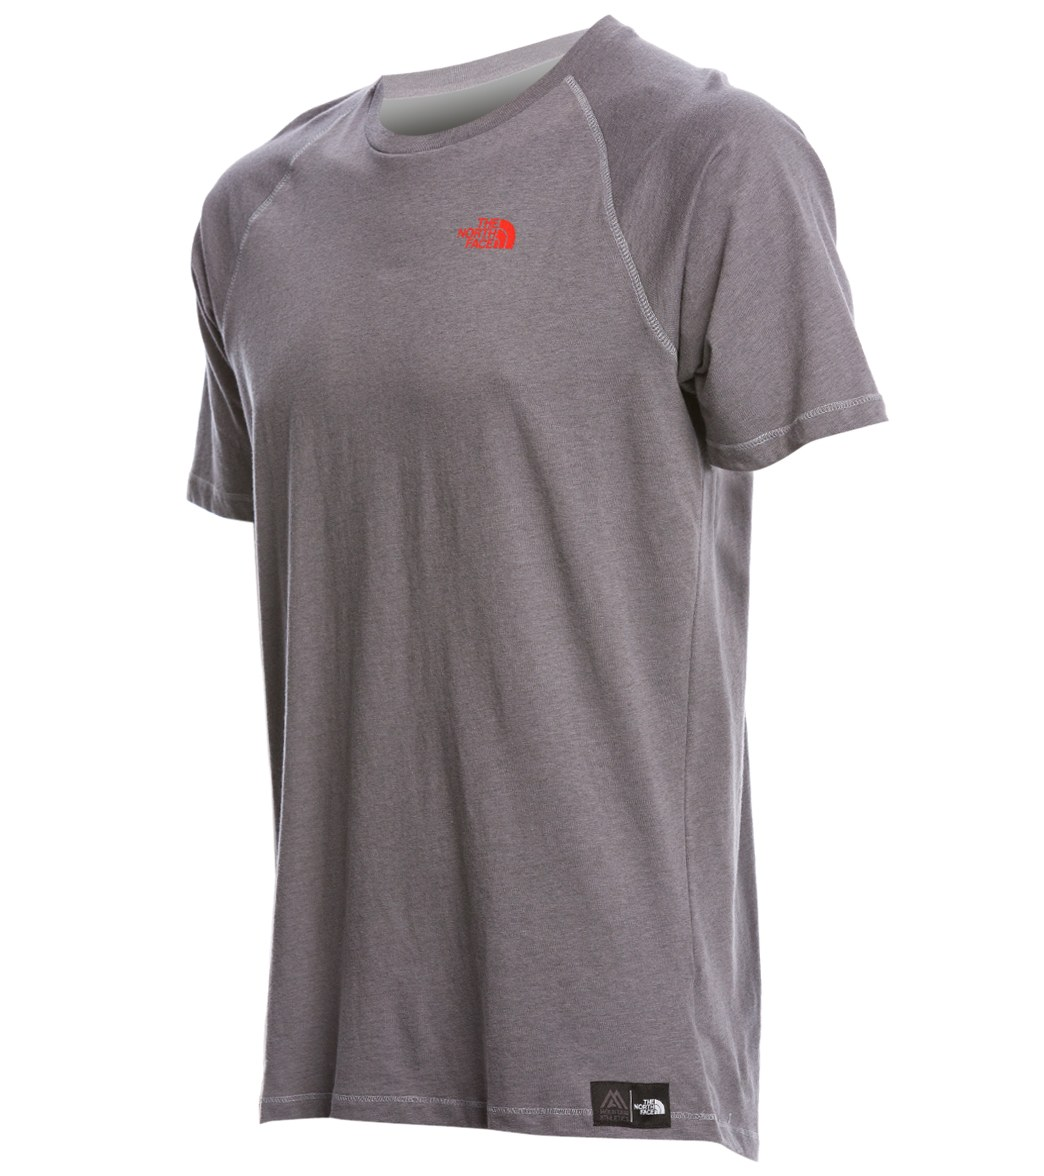 beedec616f The North Face Men s Recking Short Sleeve Crew at SwimOutlet.com